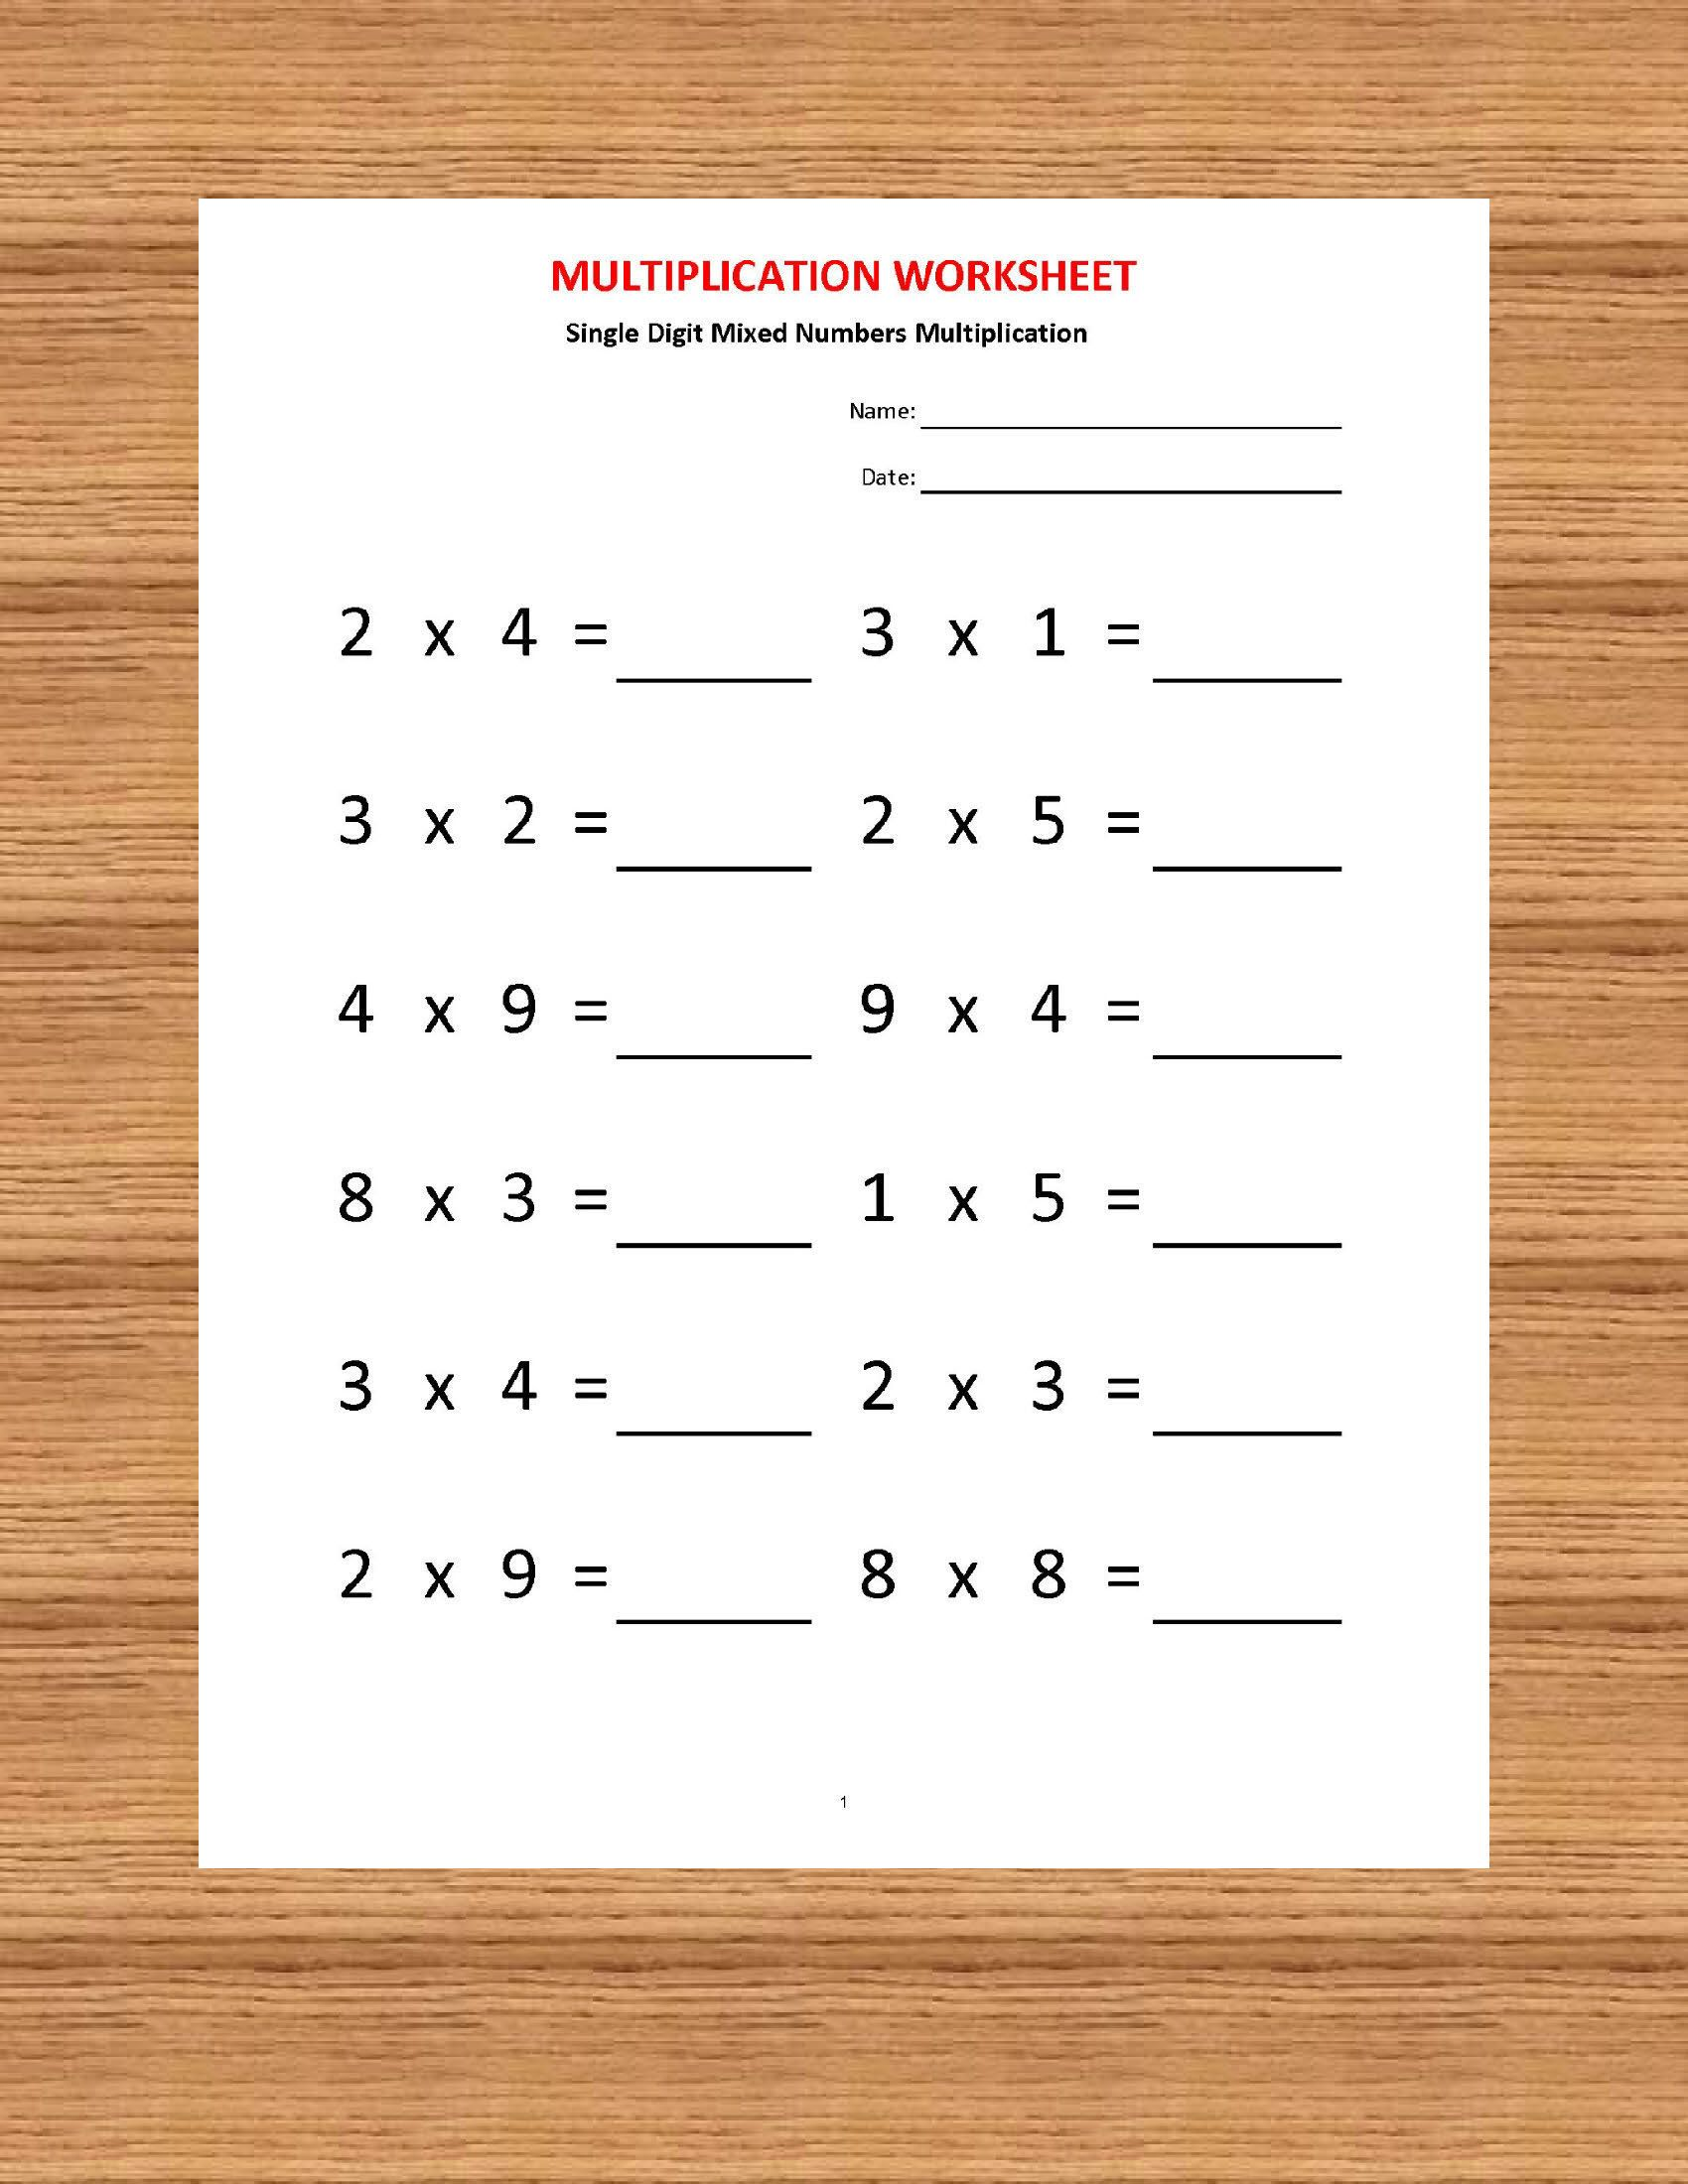 hight resolution of Multiplication Worksheets Printable worksheets   Etsy   2nd grade worksheets